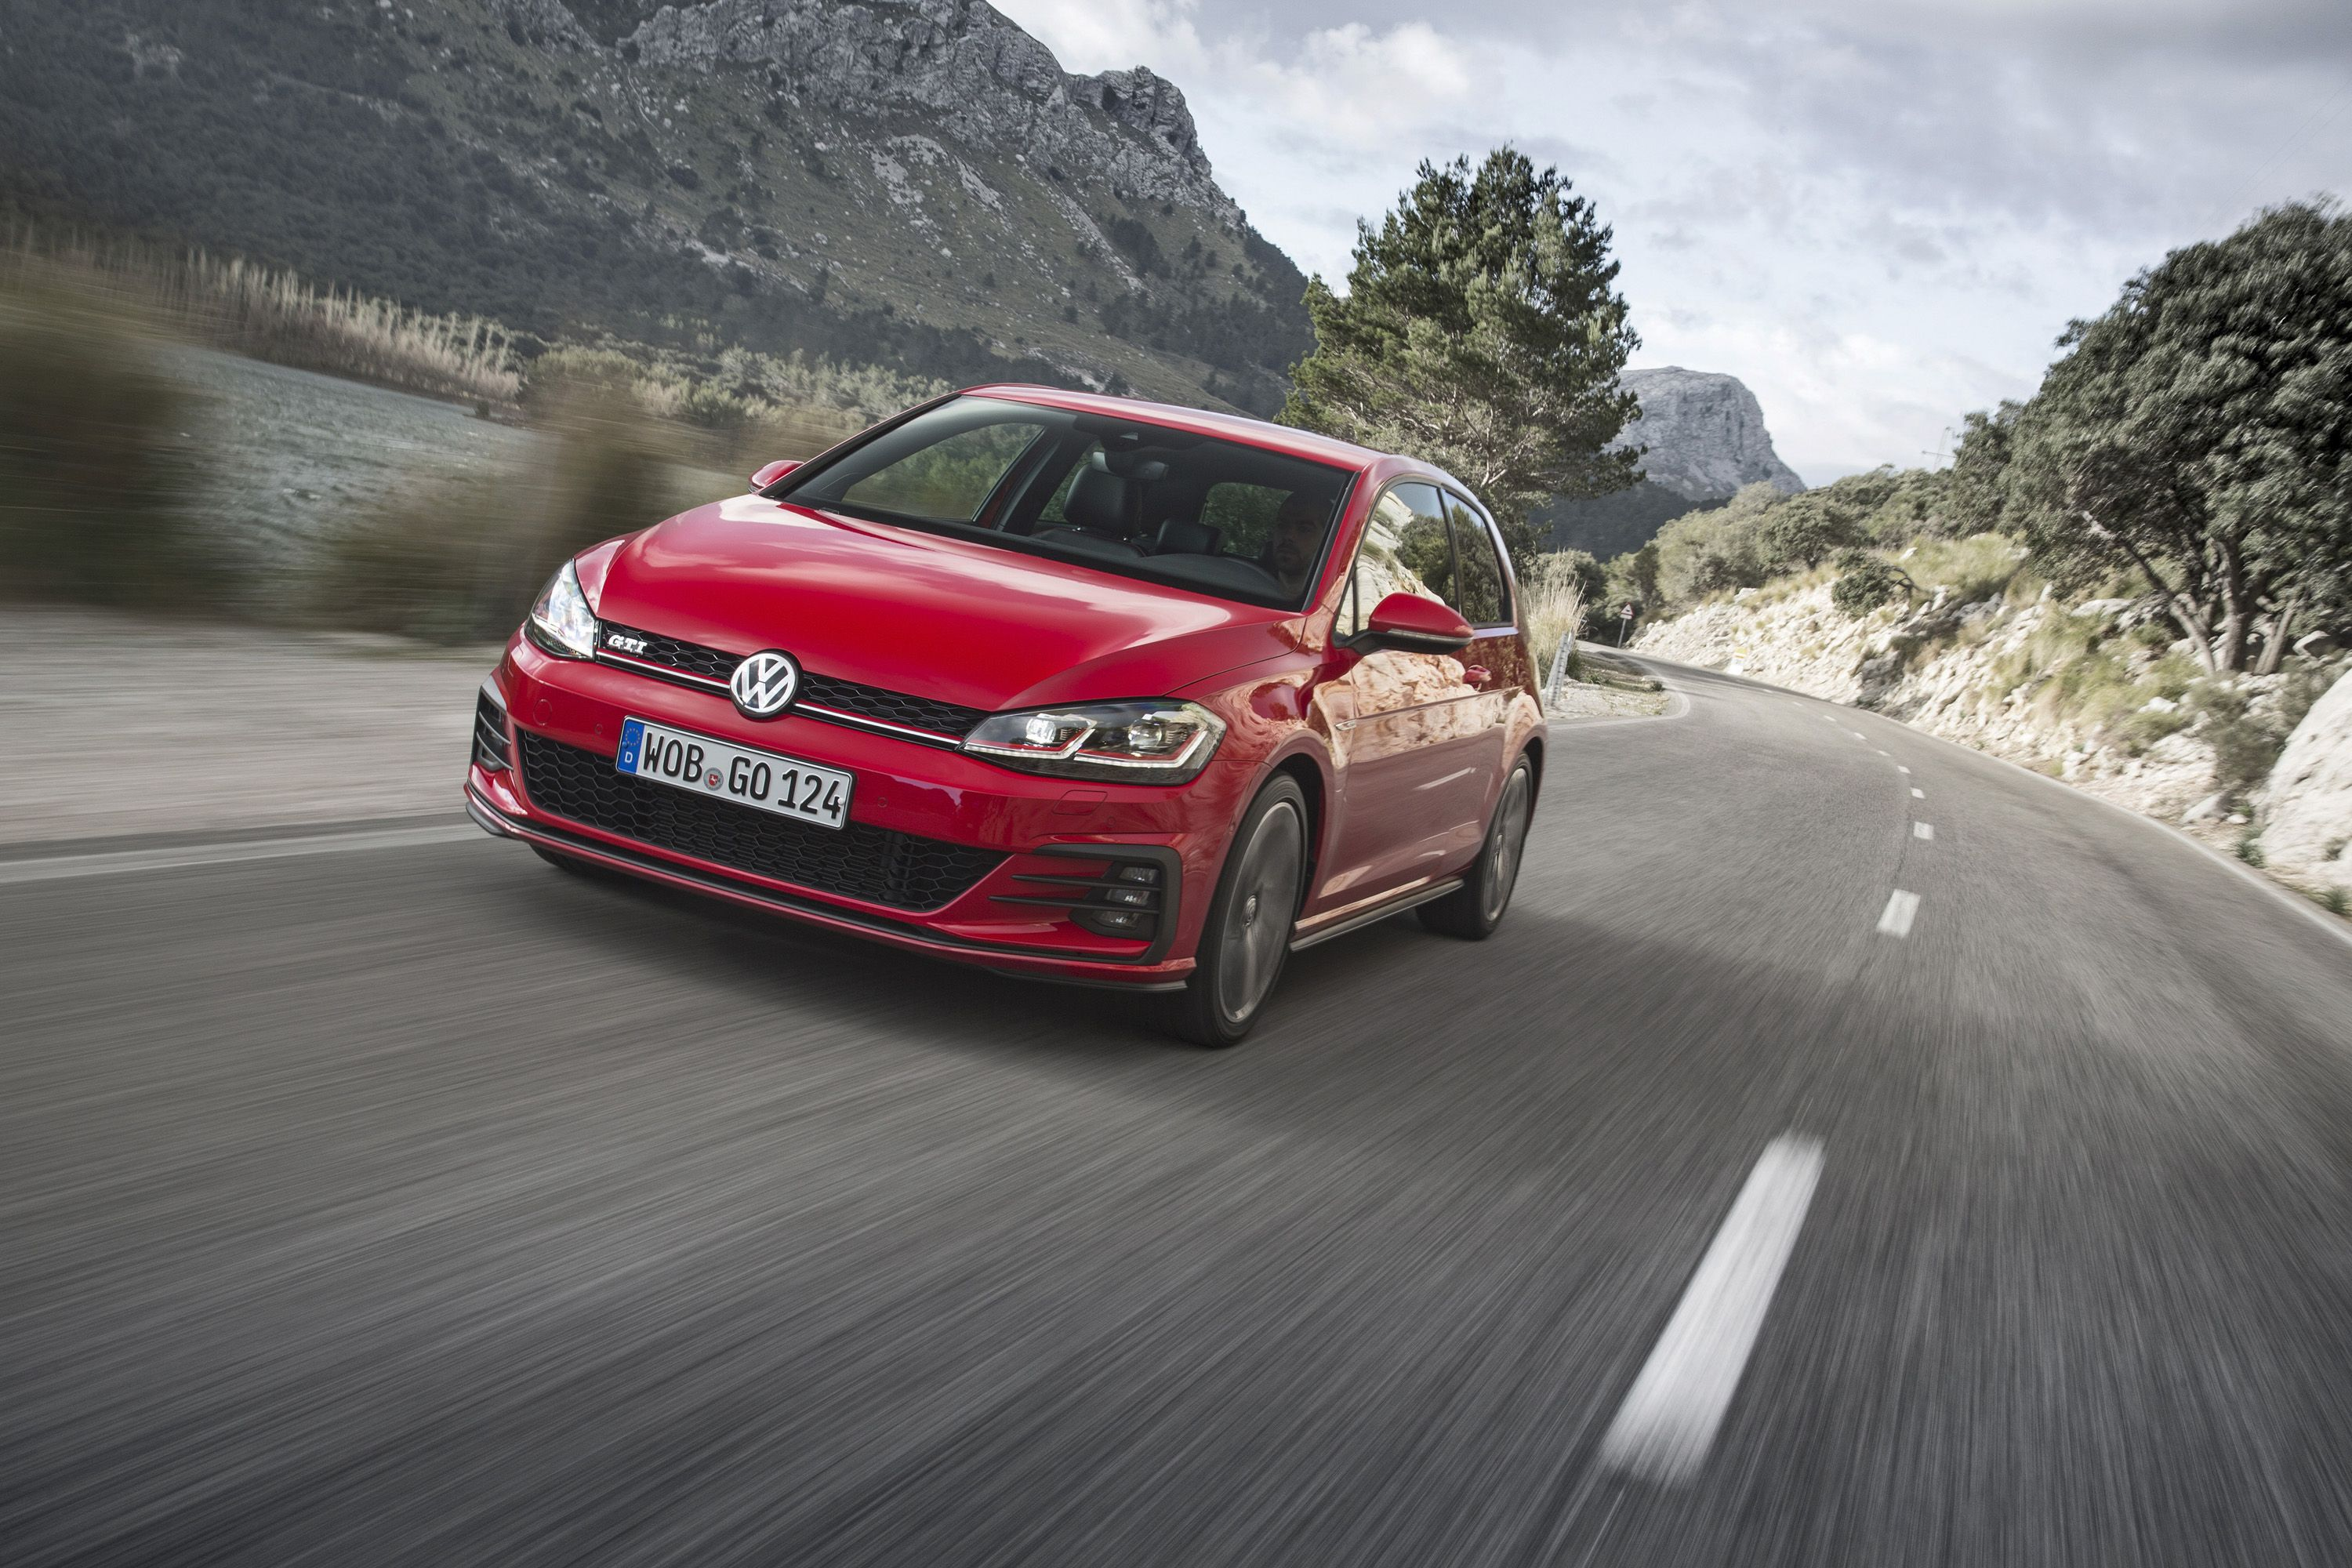 2019 Volkswagen Golf Gti Rabbit Edition Volkswagen Golf